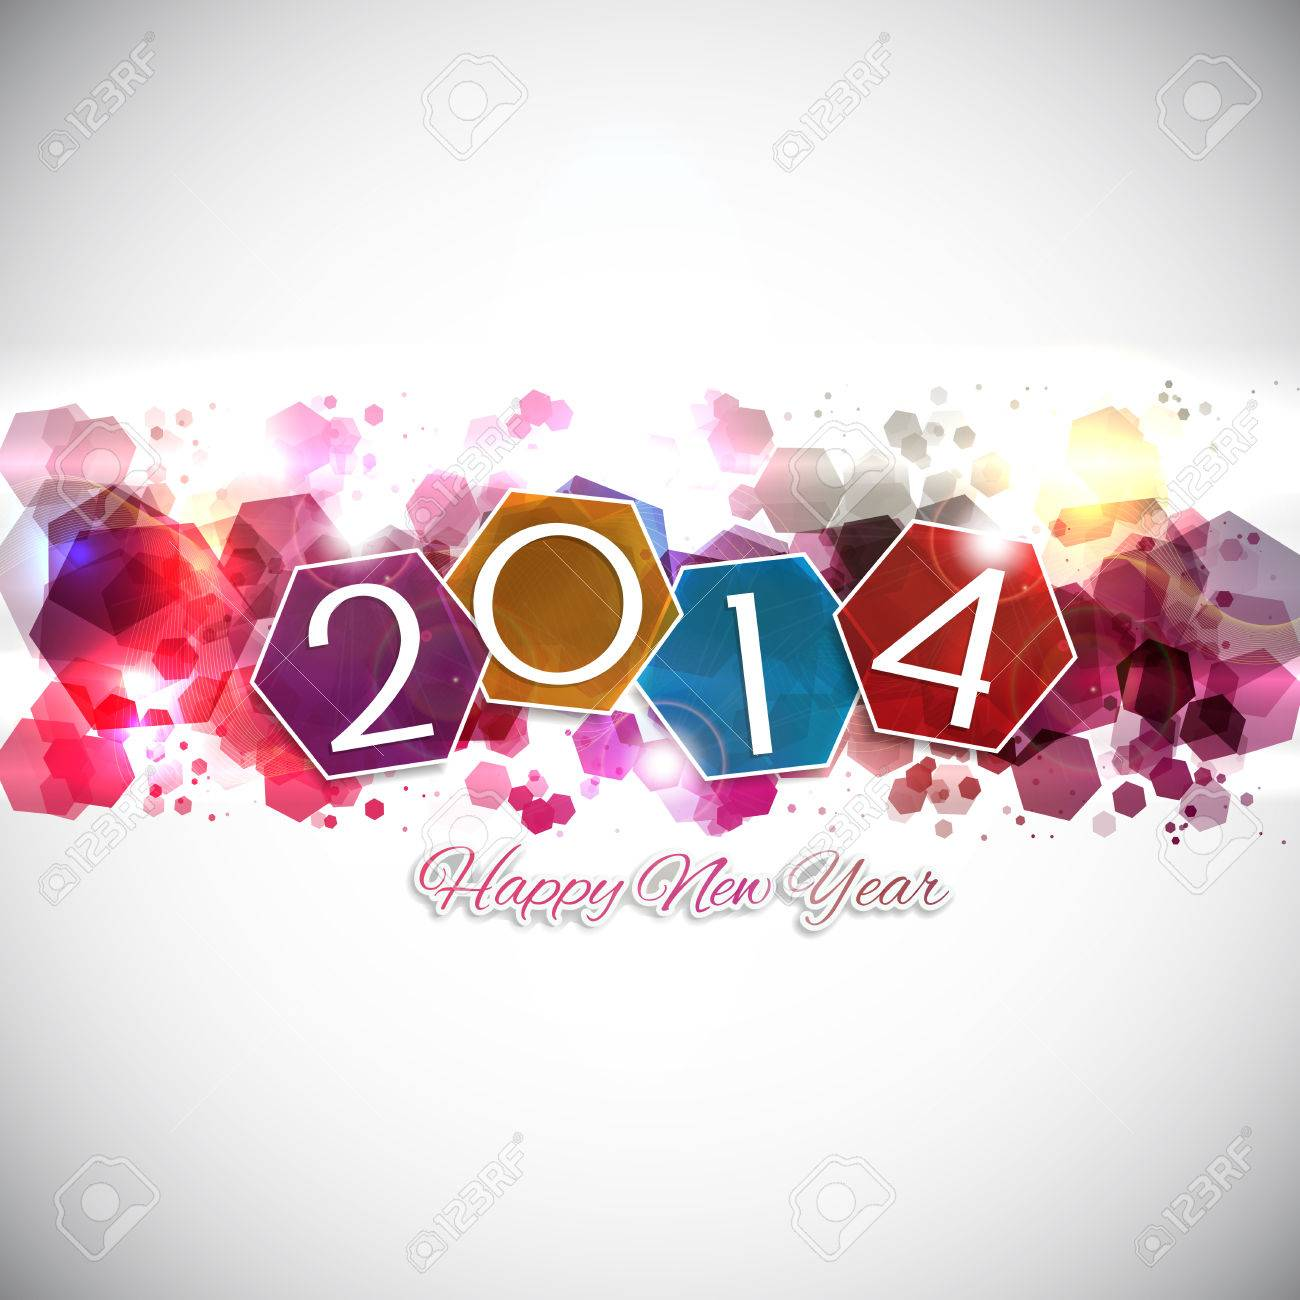 Abstract background for the Happy New Year Stock Photo - 23565080